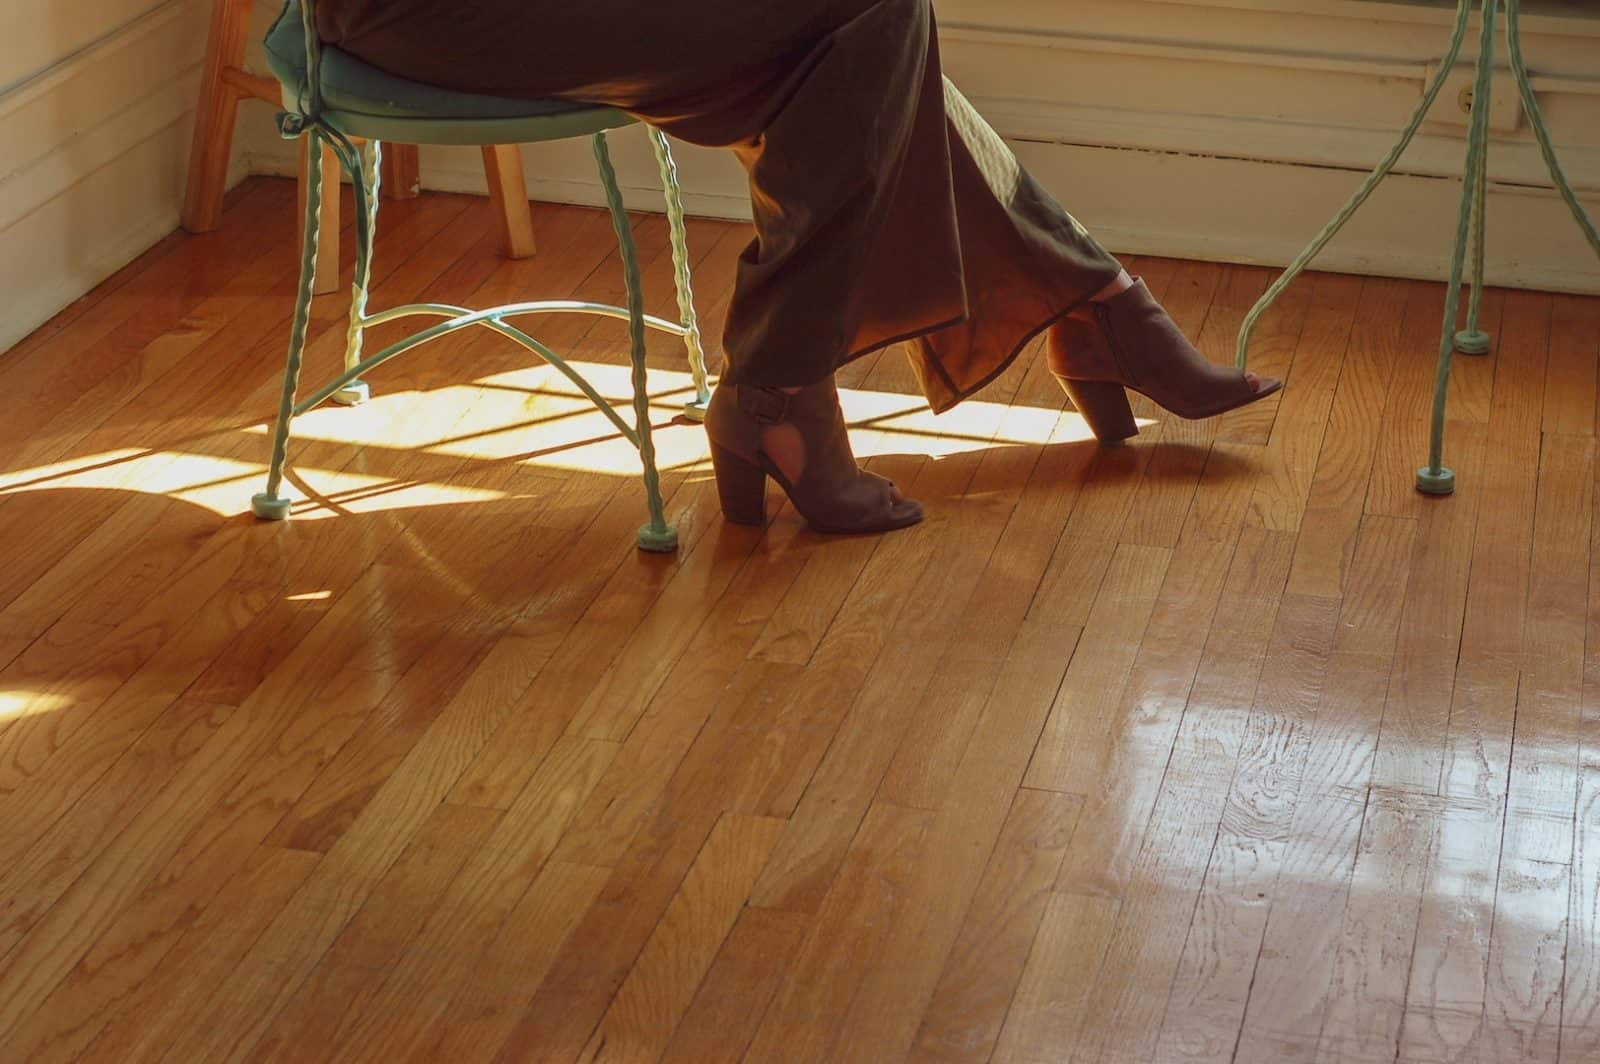 Home Interior Design Tips: How To Take Care Of Your Floor. Laminated floor